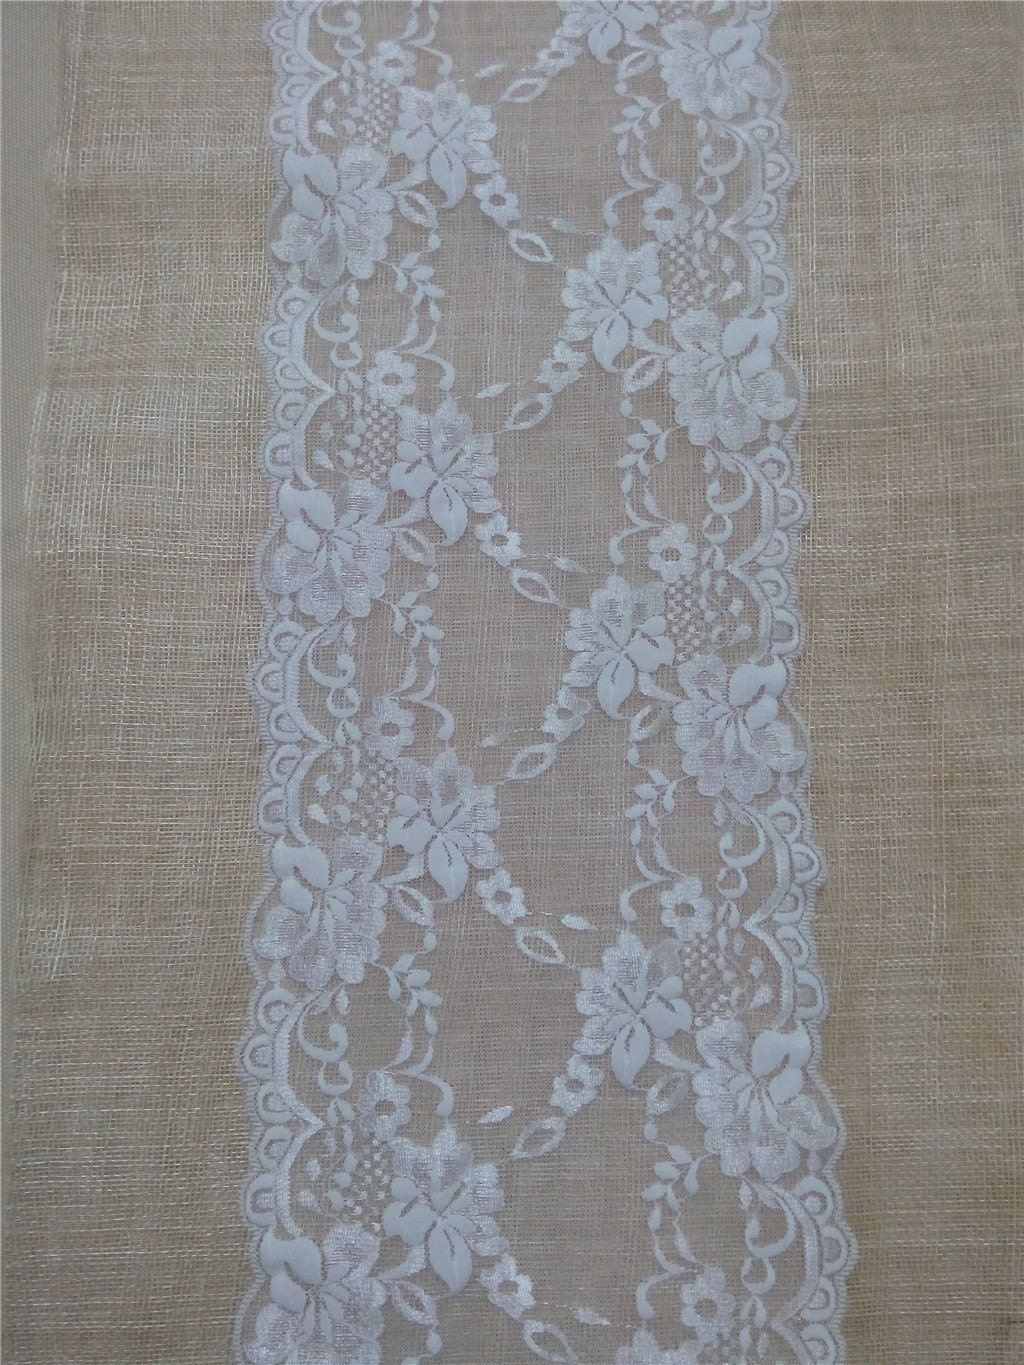 lace table runner 8 wide wedding table runner